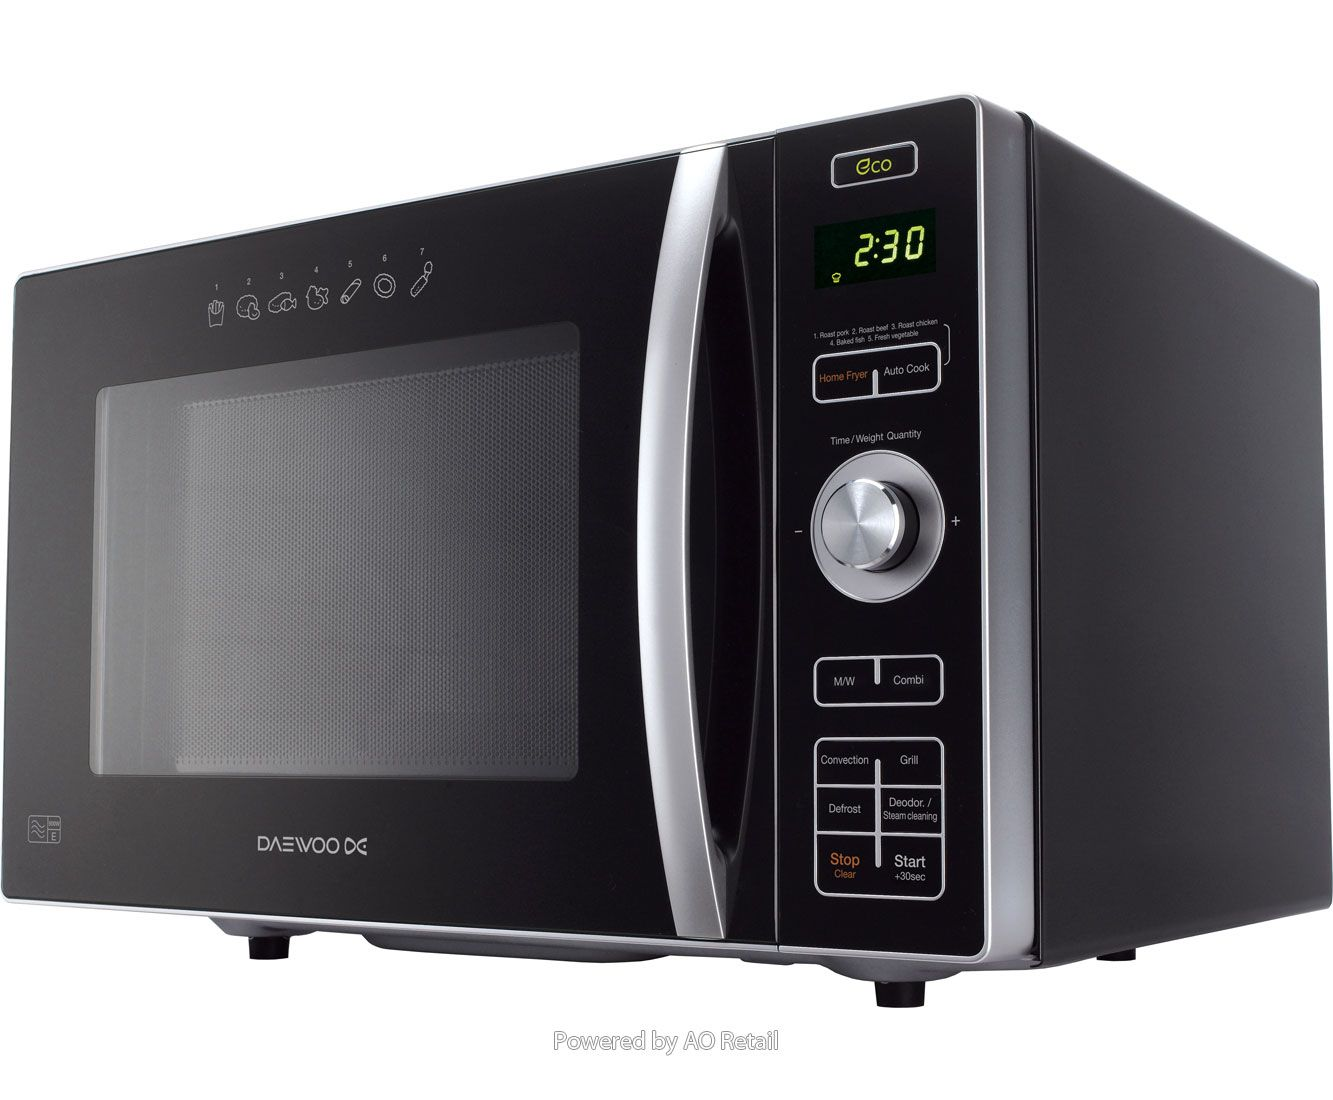 Combination Microwave Oven Daewoo With Fat Free Fryer Koc8hafr 24 Litre Combination Microwave